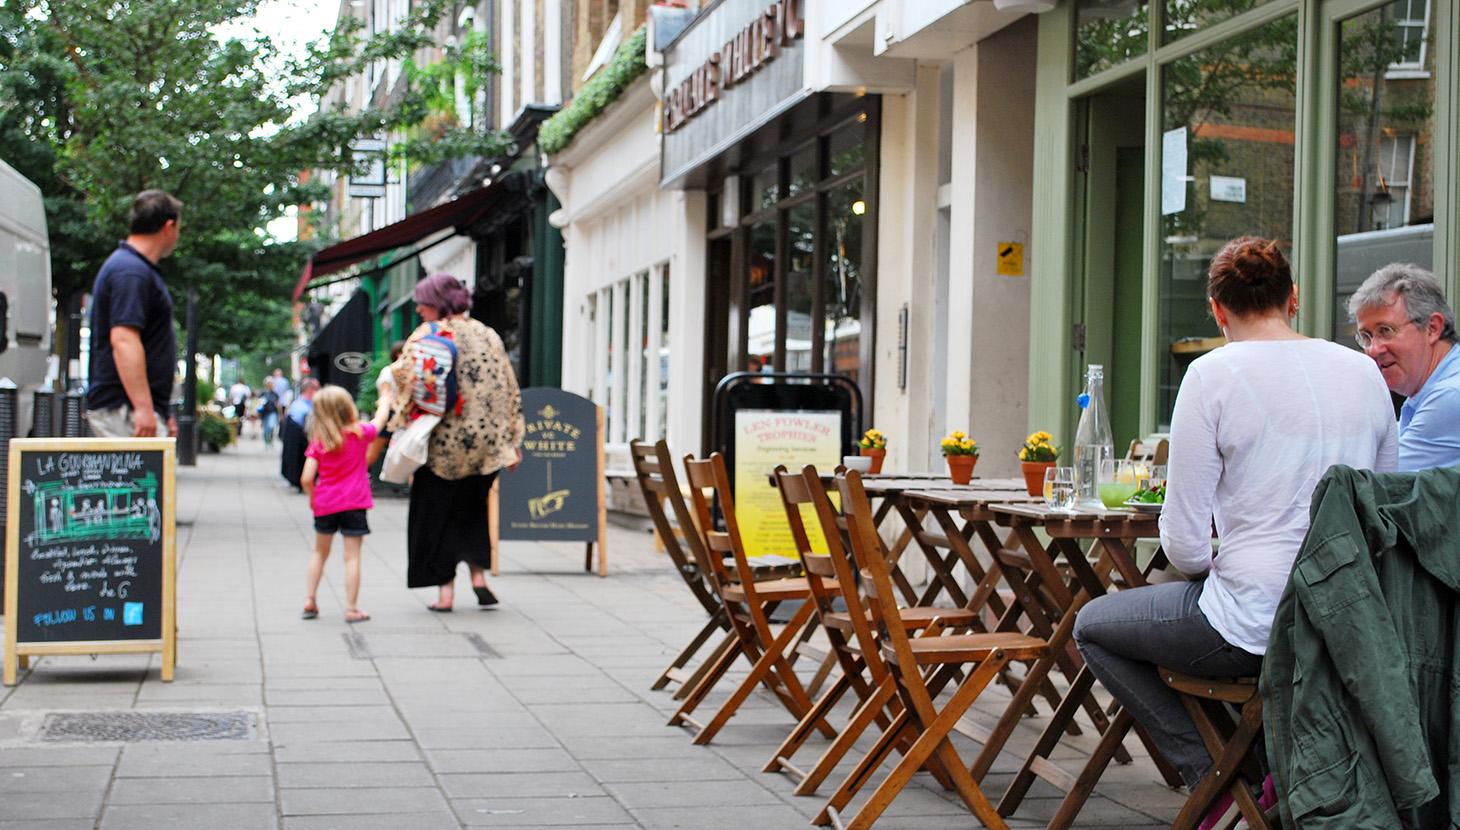 The Independent Community Of Lambs Conduit Street